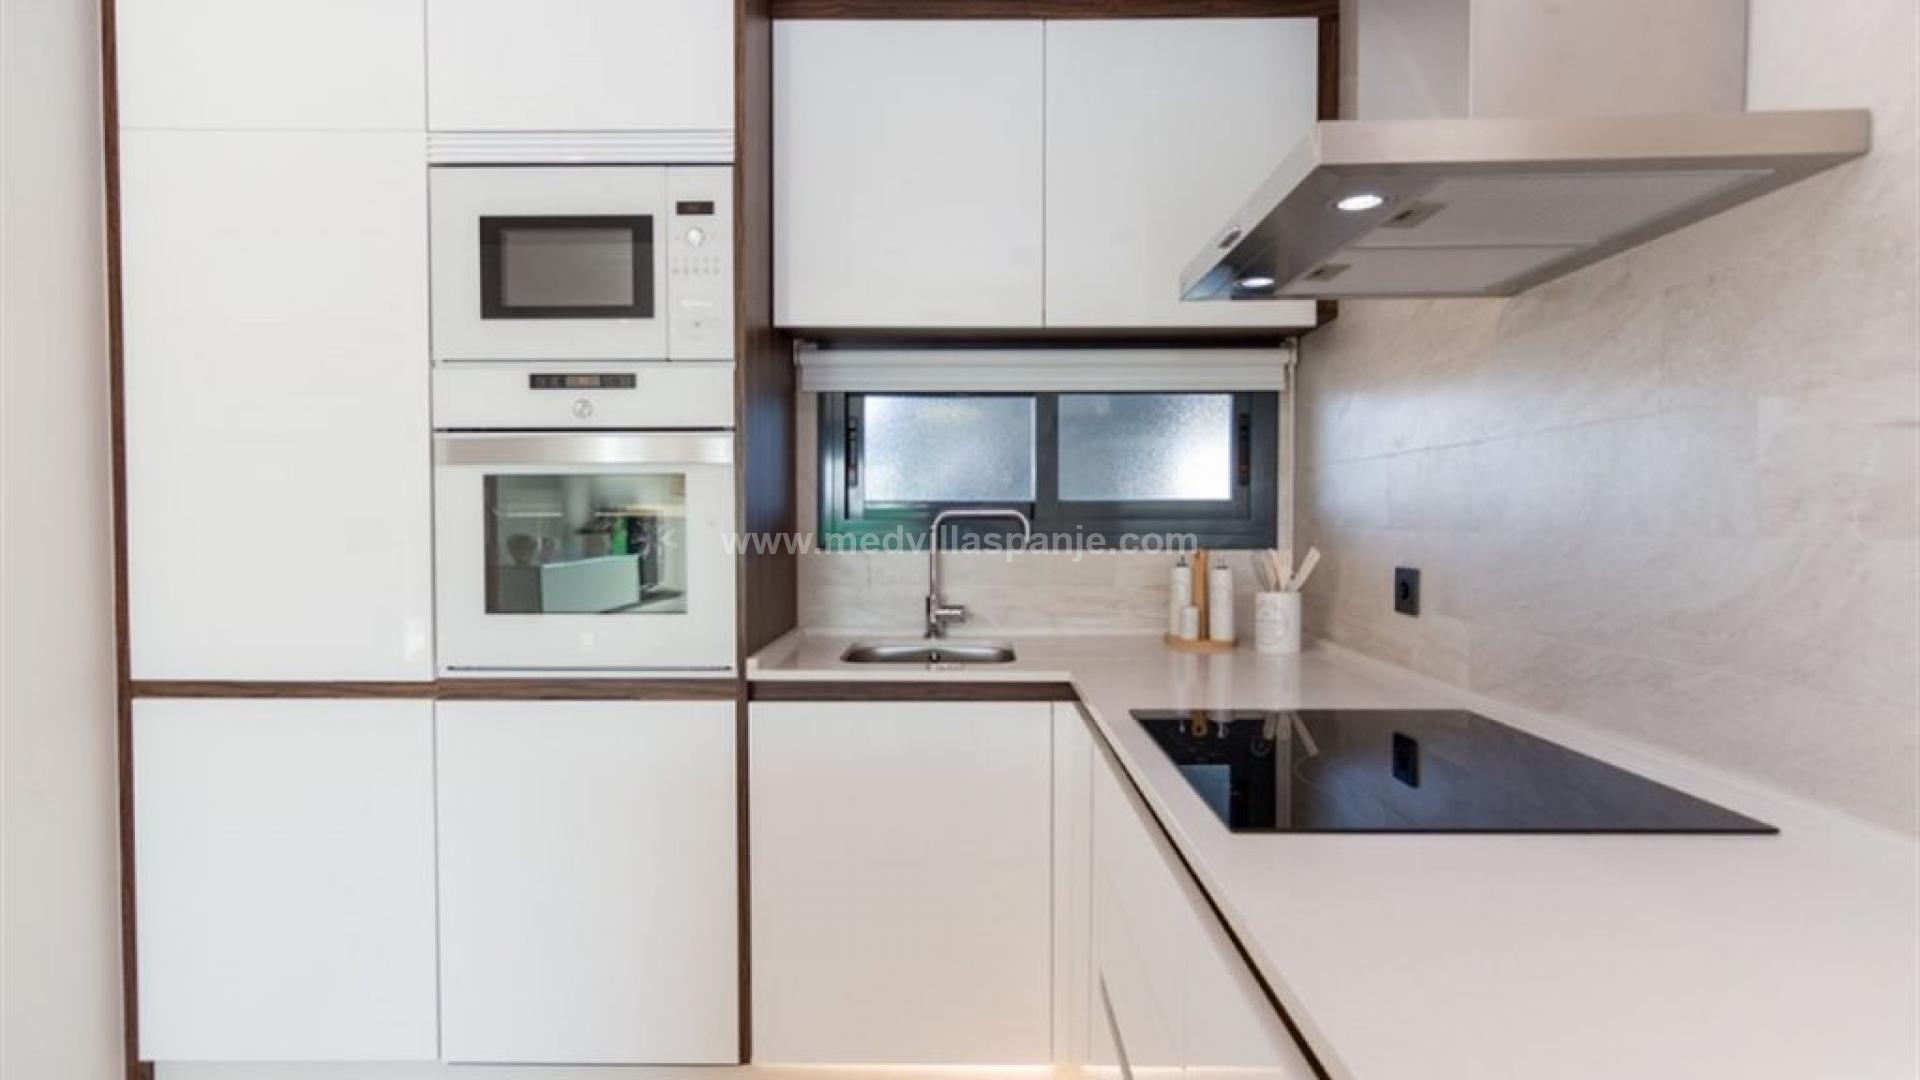 A vendre appartements Oasis Beach XIV: nouvelle phase in Medvilla Spanje